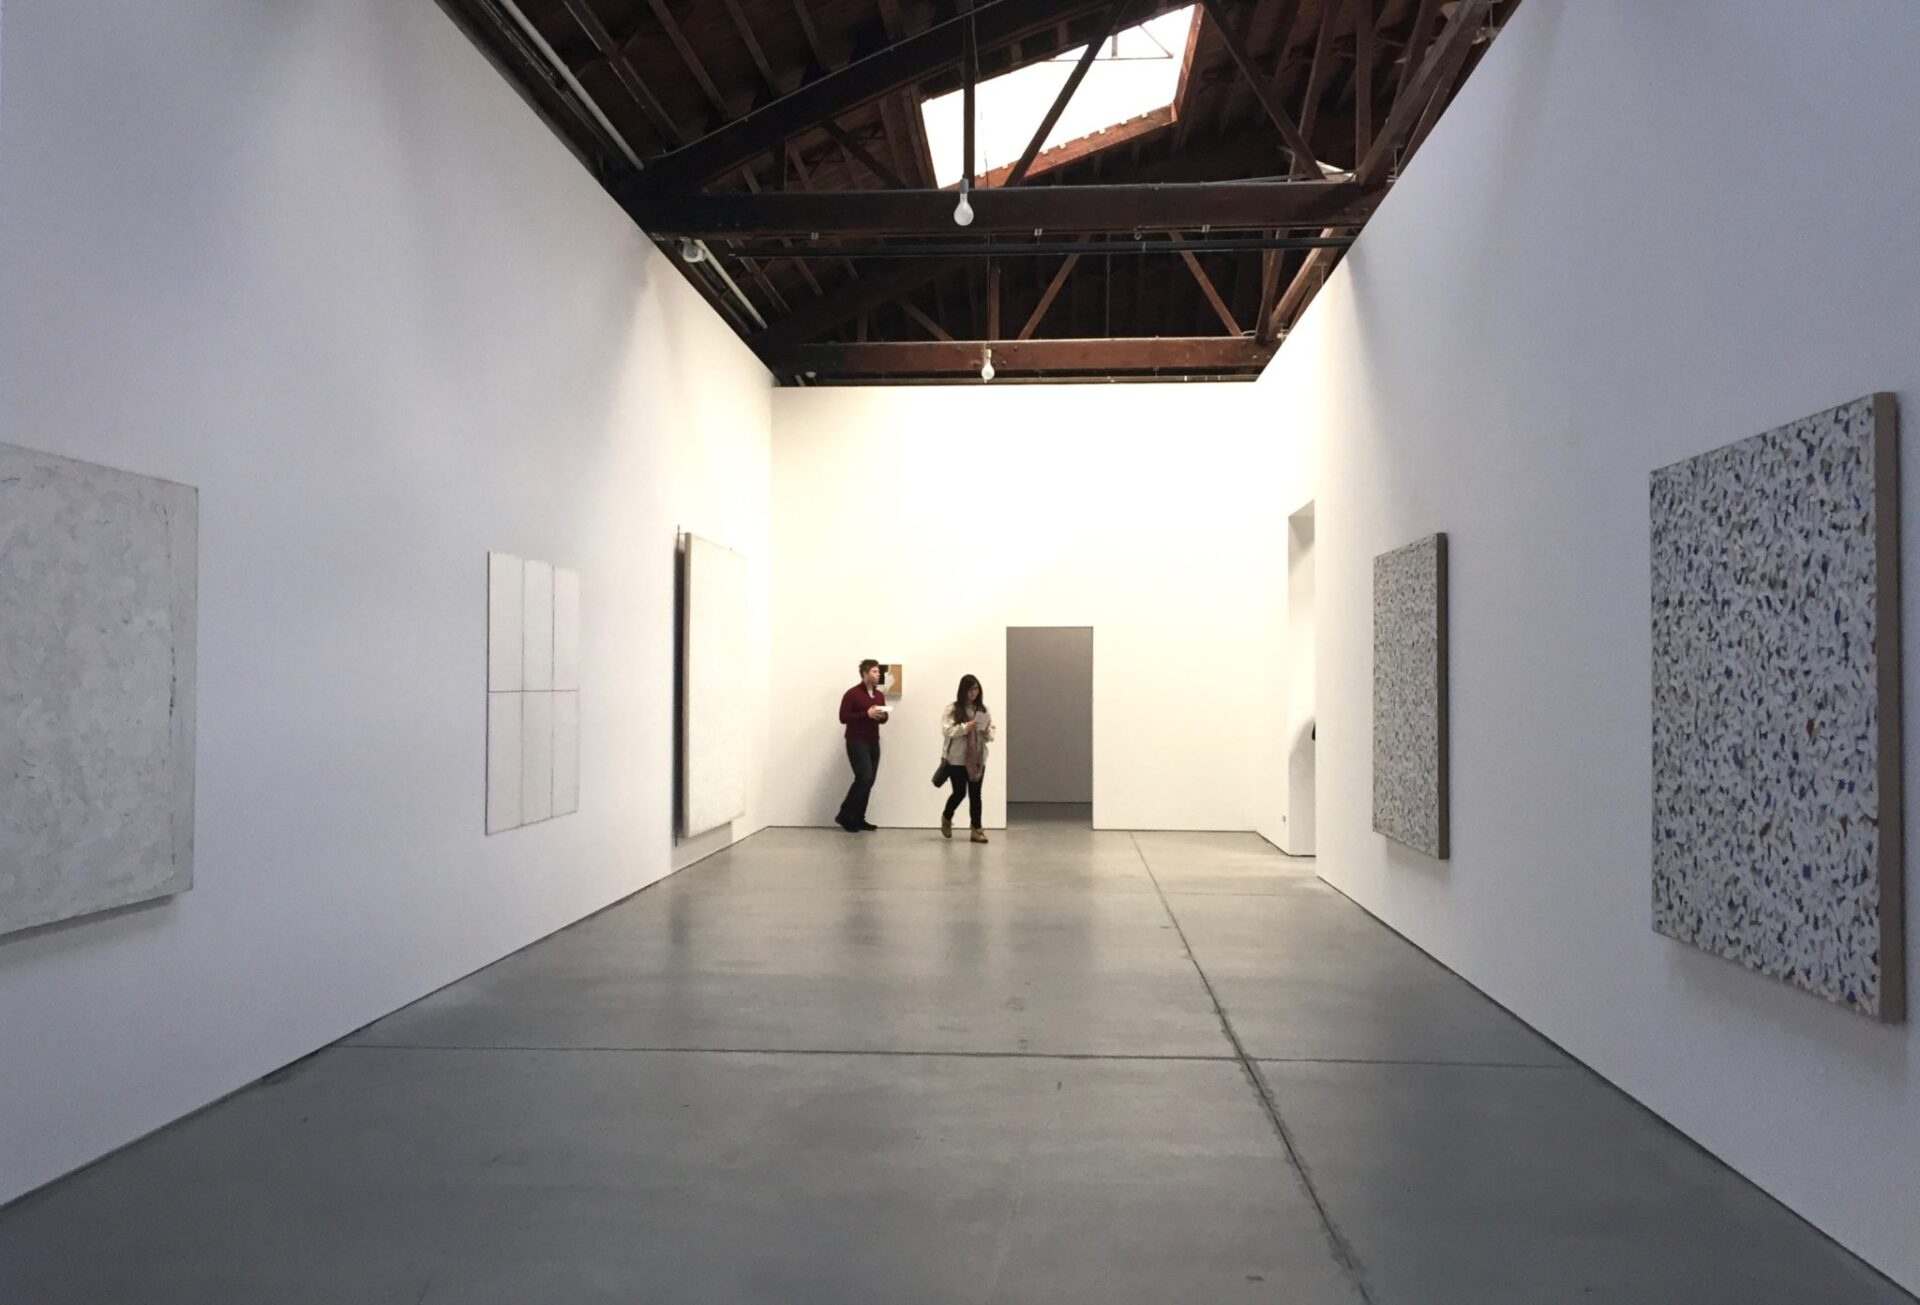 Robert Ryman. Gallery 1, installation view. Dia:Chelsea